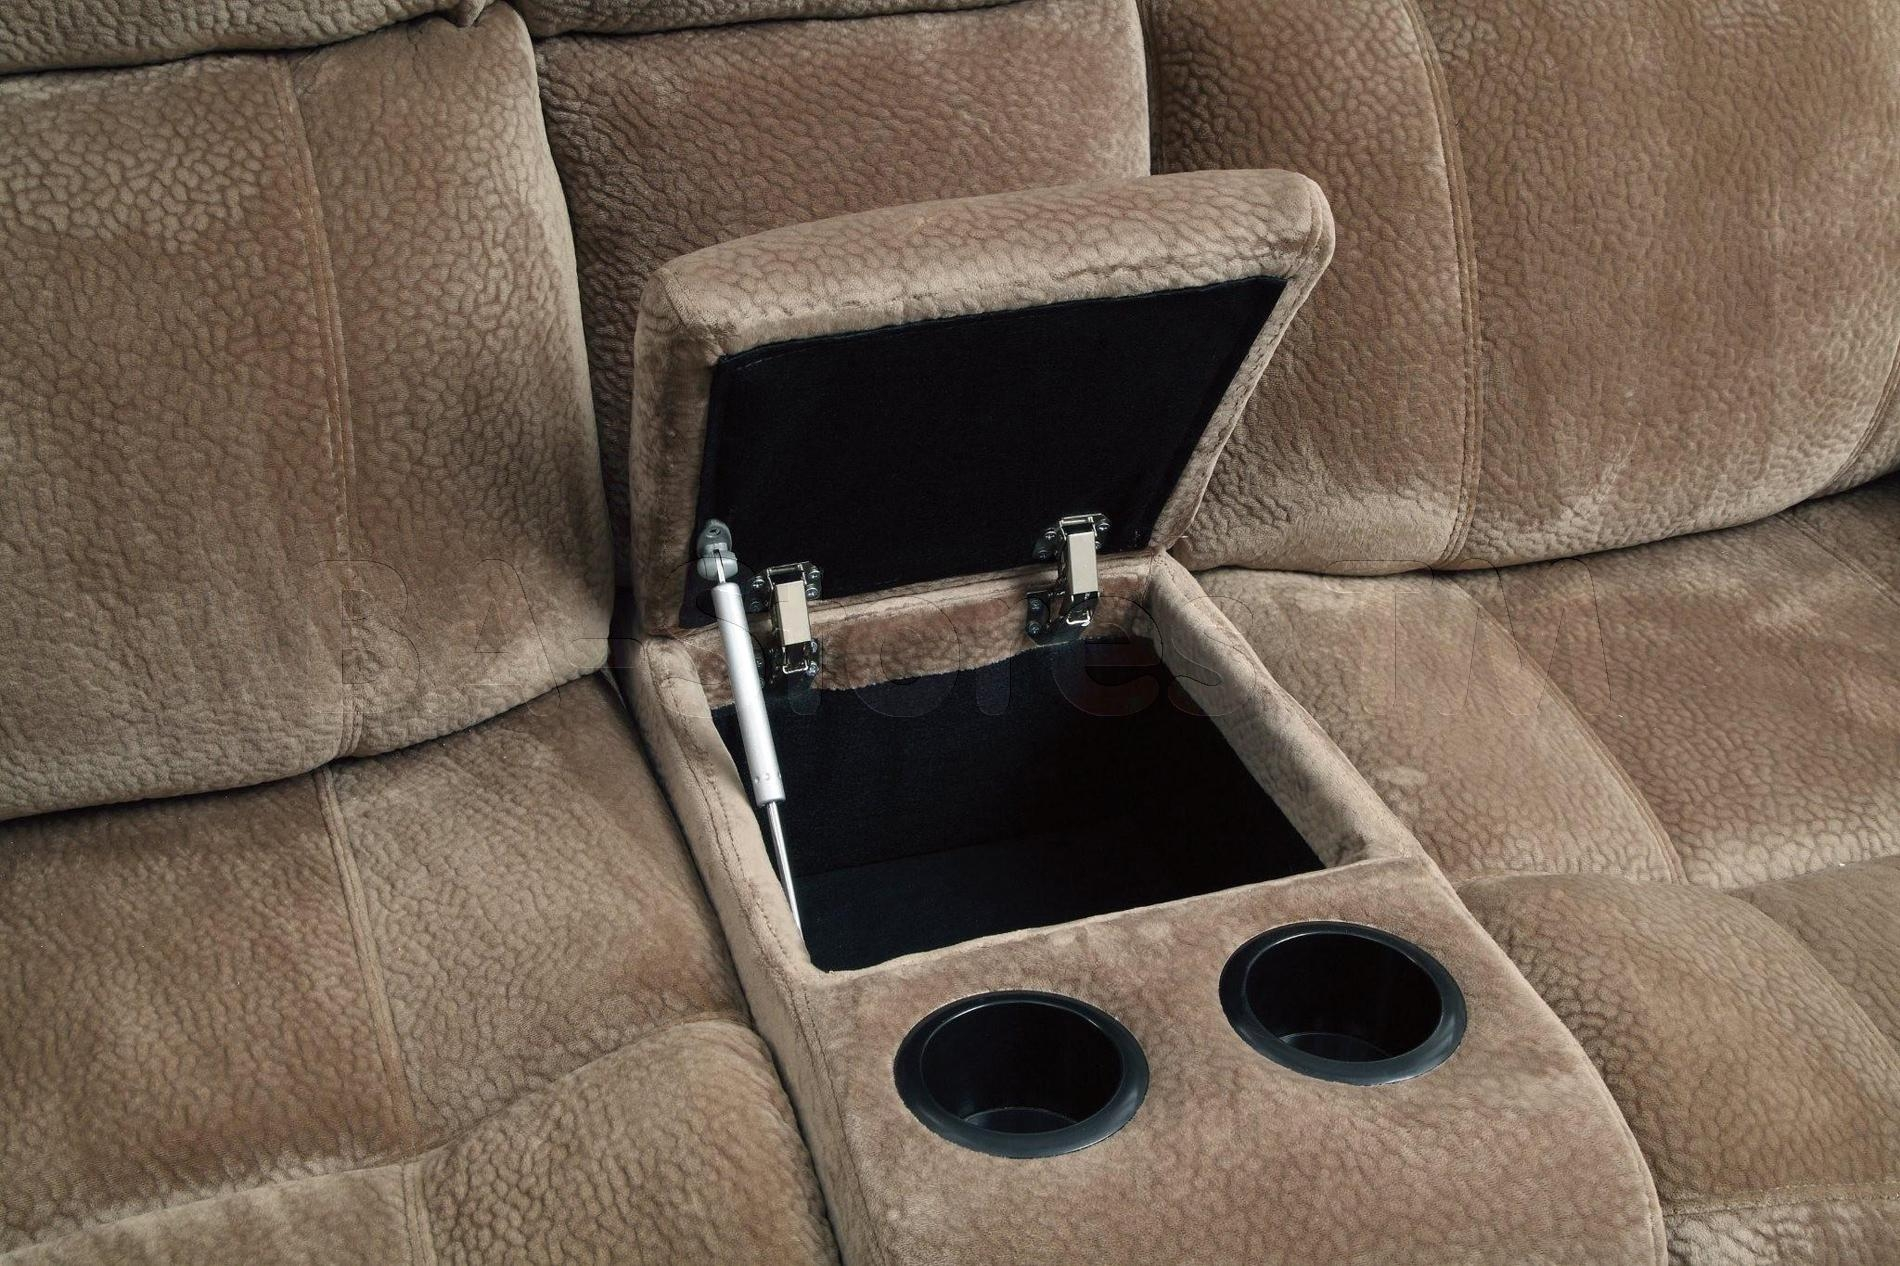 Sofa Recliners With Cup Holders Within Sofas With Cup Holders (Image 18 of 20)